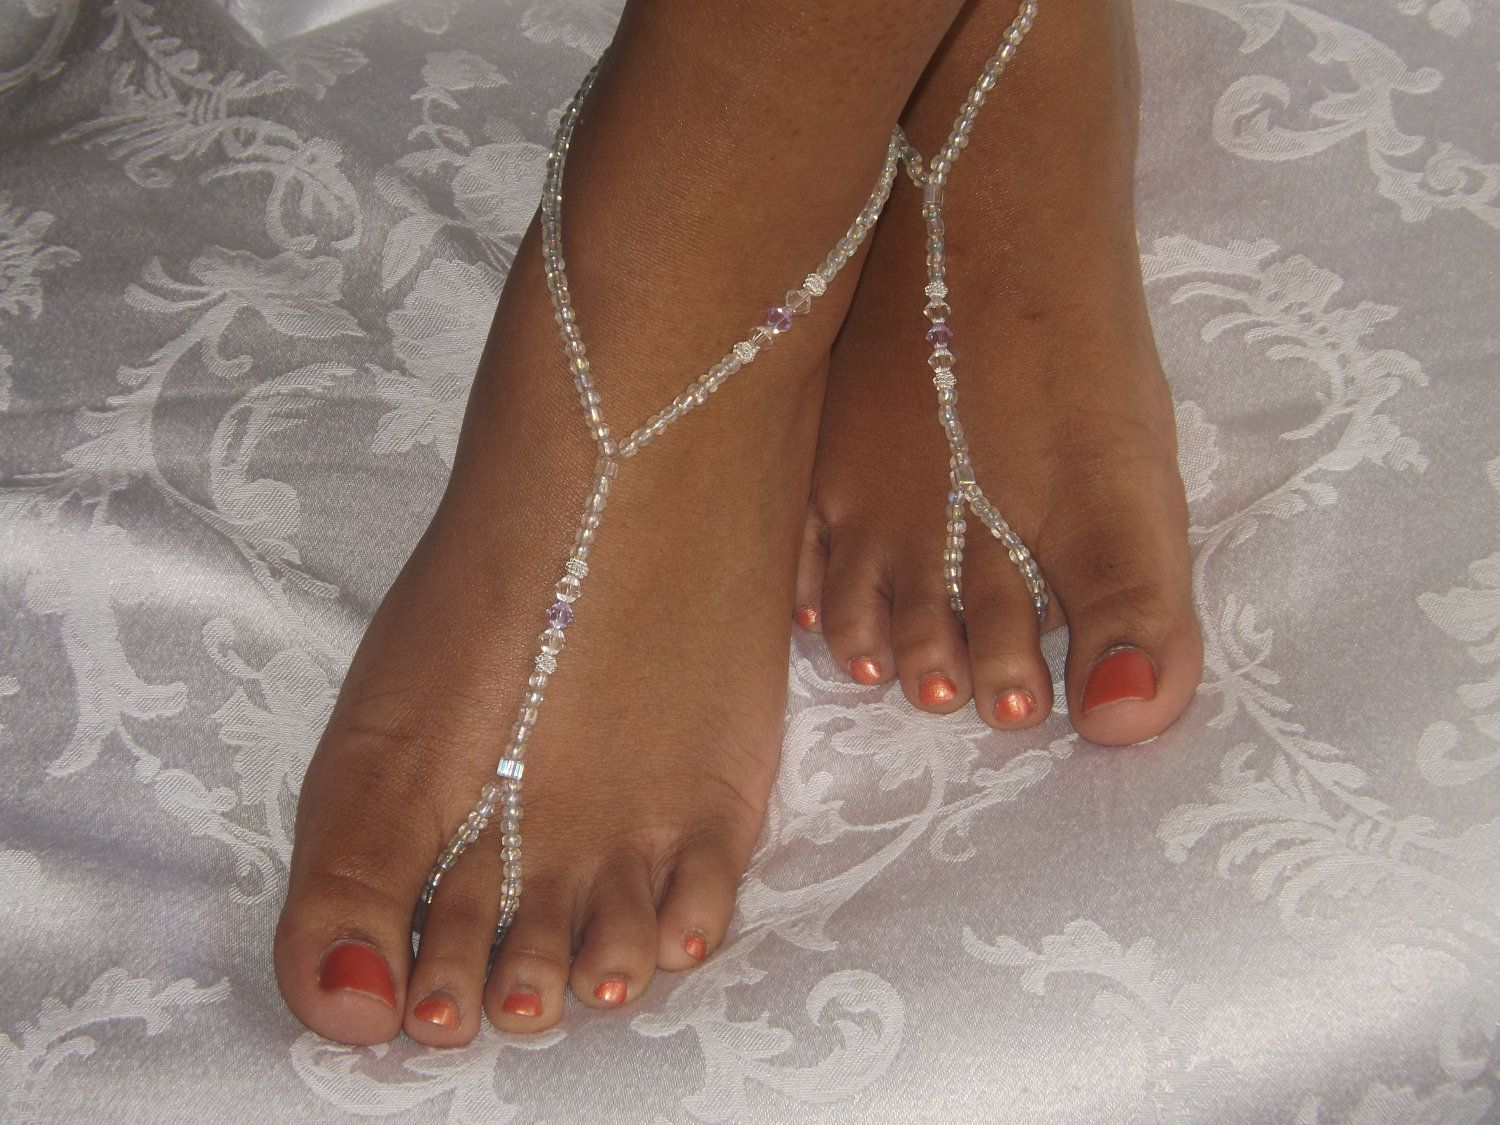 Footless sandals cute idea Wedding Pinterest Footless